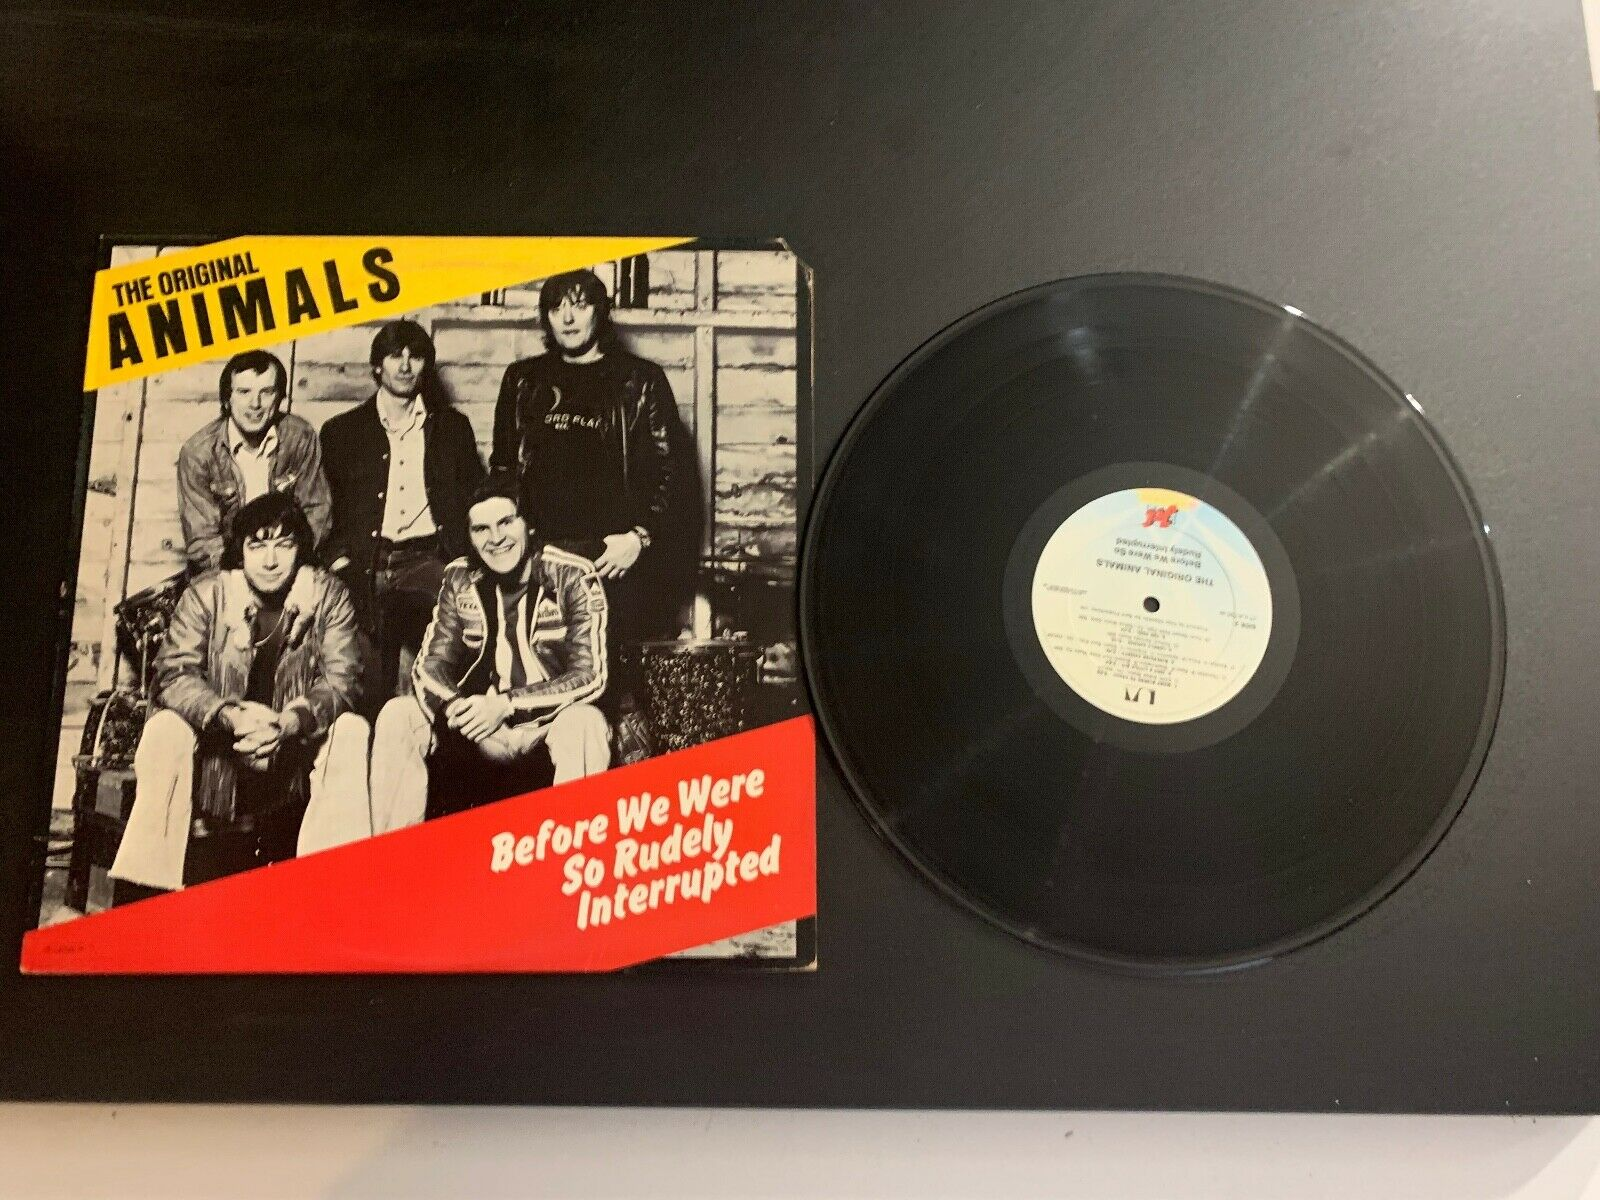 LP RECORD - THE ORIGINAL ANIMALS - BEFORE WE WERE SO RUDELY INTERRUPTED JET REC - $9.99